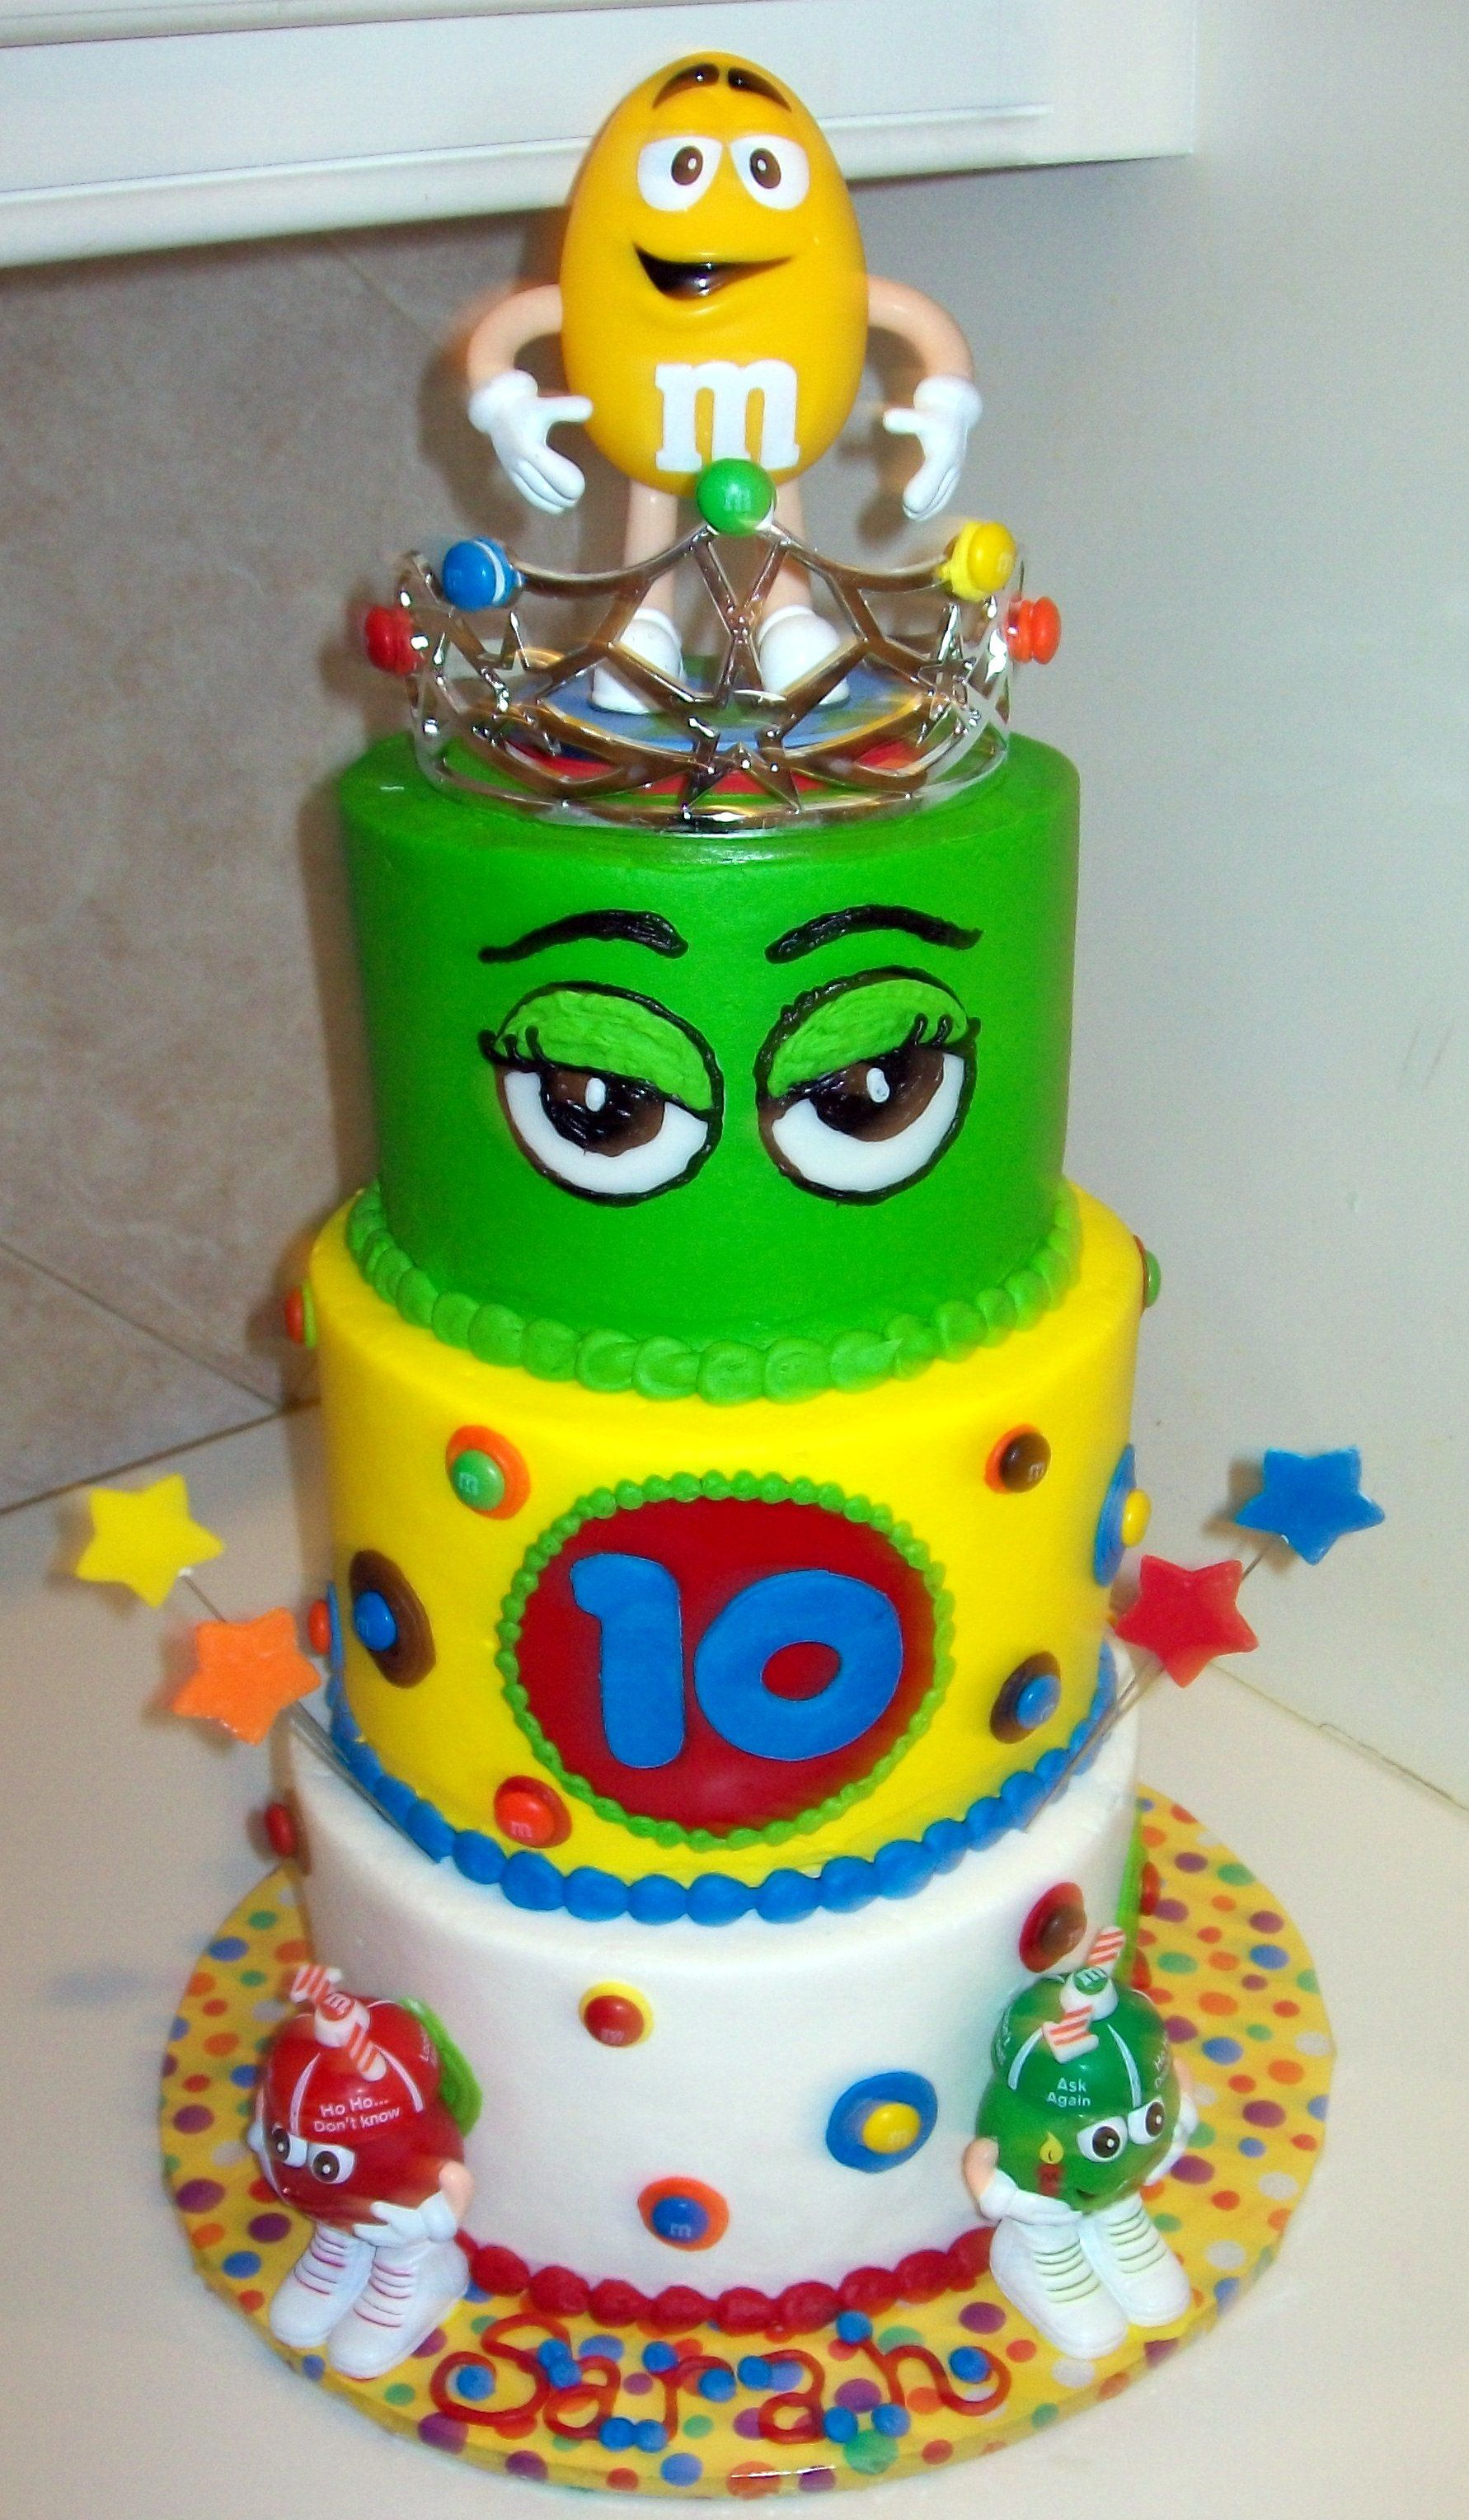 M Ms Birthday Cake another gr8 cake idea for my favorite Ms